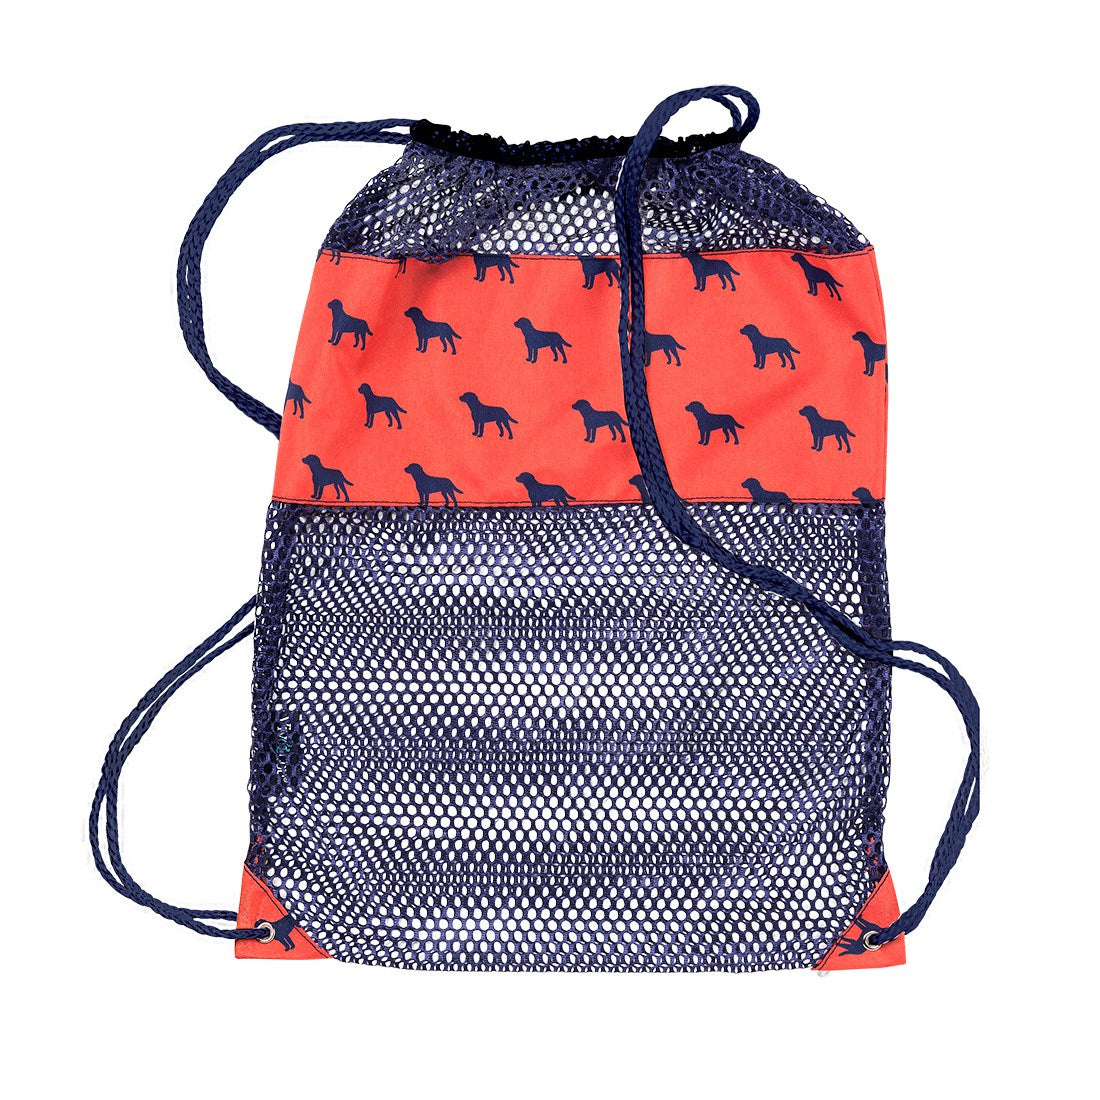 4633f1804 Doggone Personalized Mesh Backpack - Personalized Summer Gifts ...